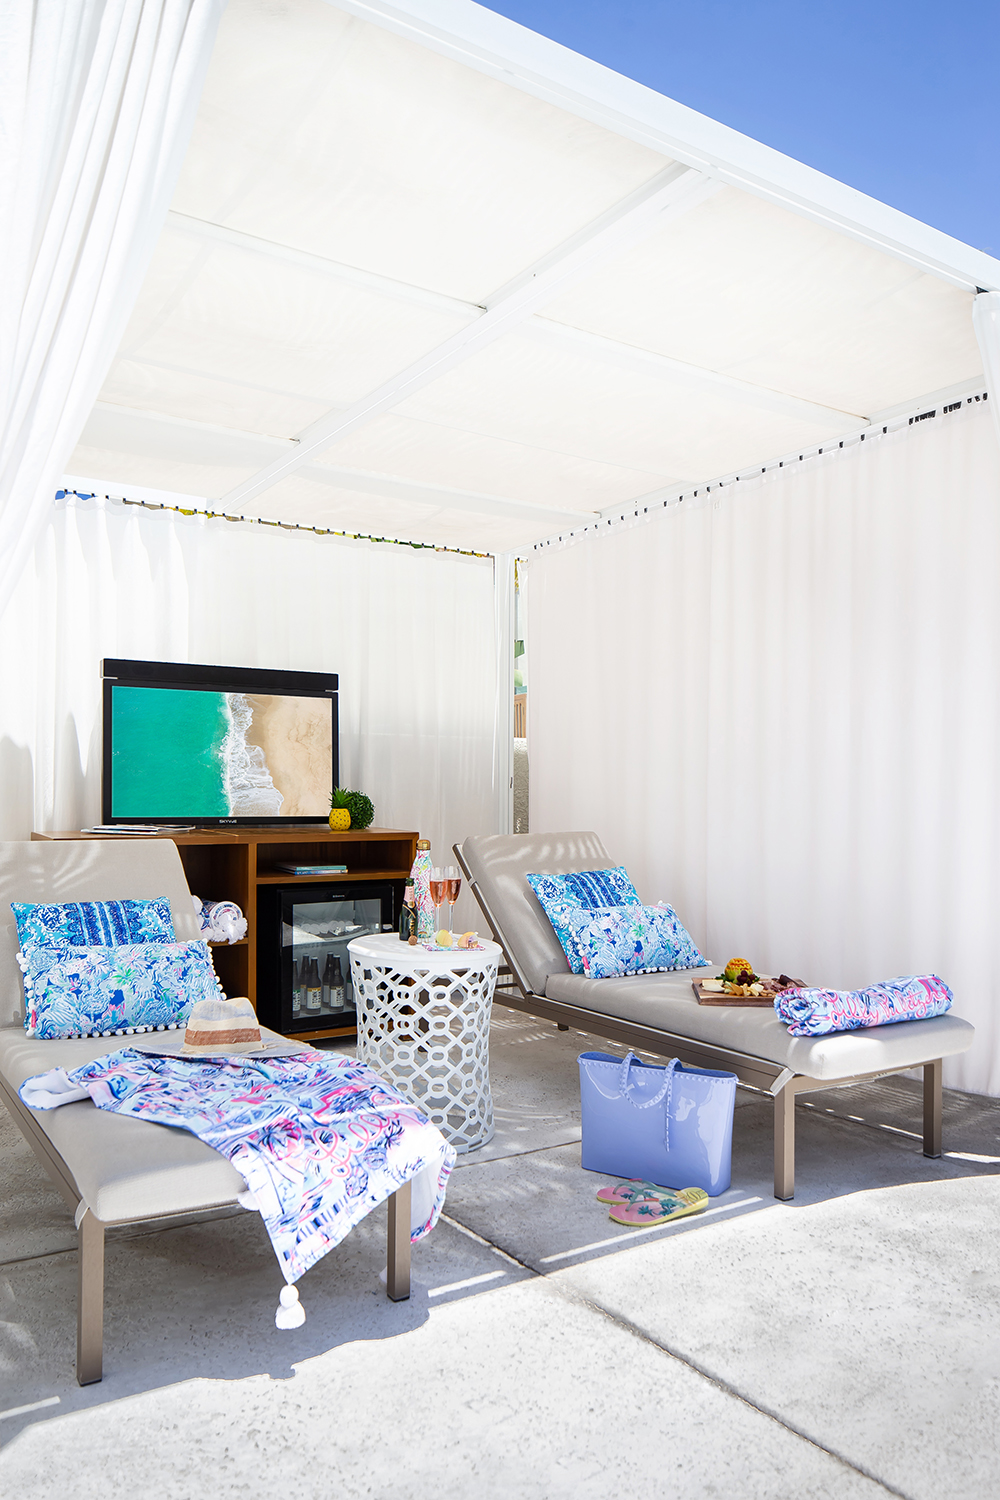 The resort's outdoor pool cabanas and daybeds will be outfitted in Lilly Pulitzer's quintessential vibrant prints.